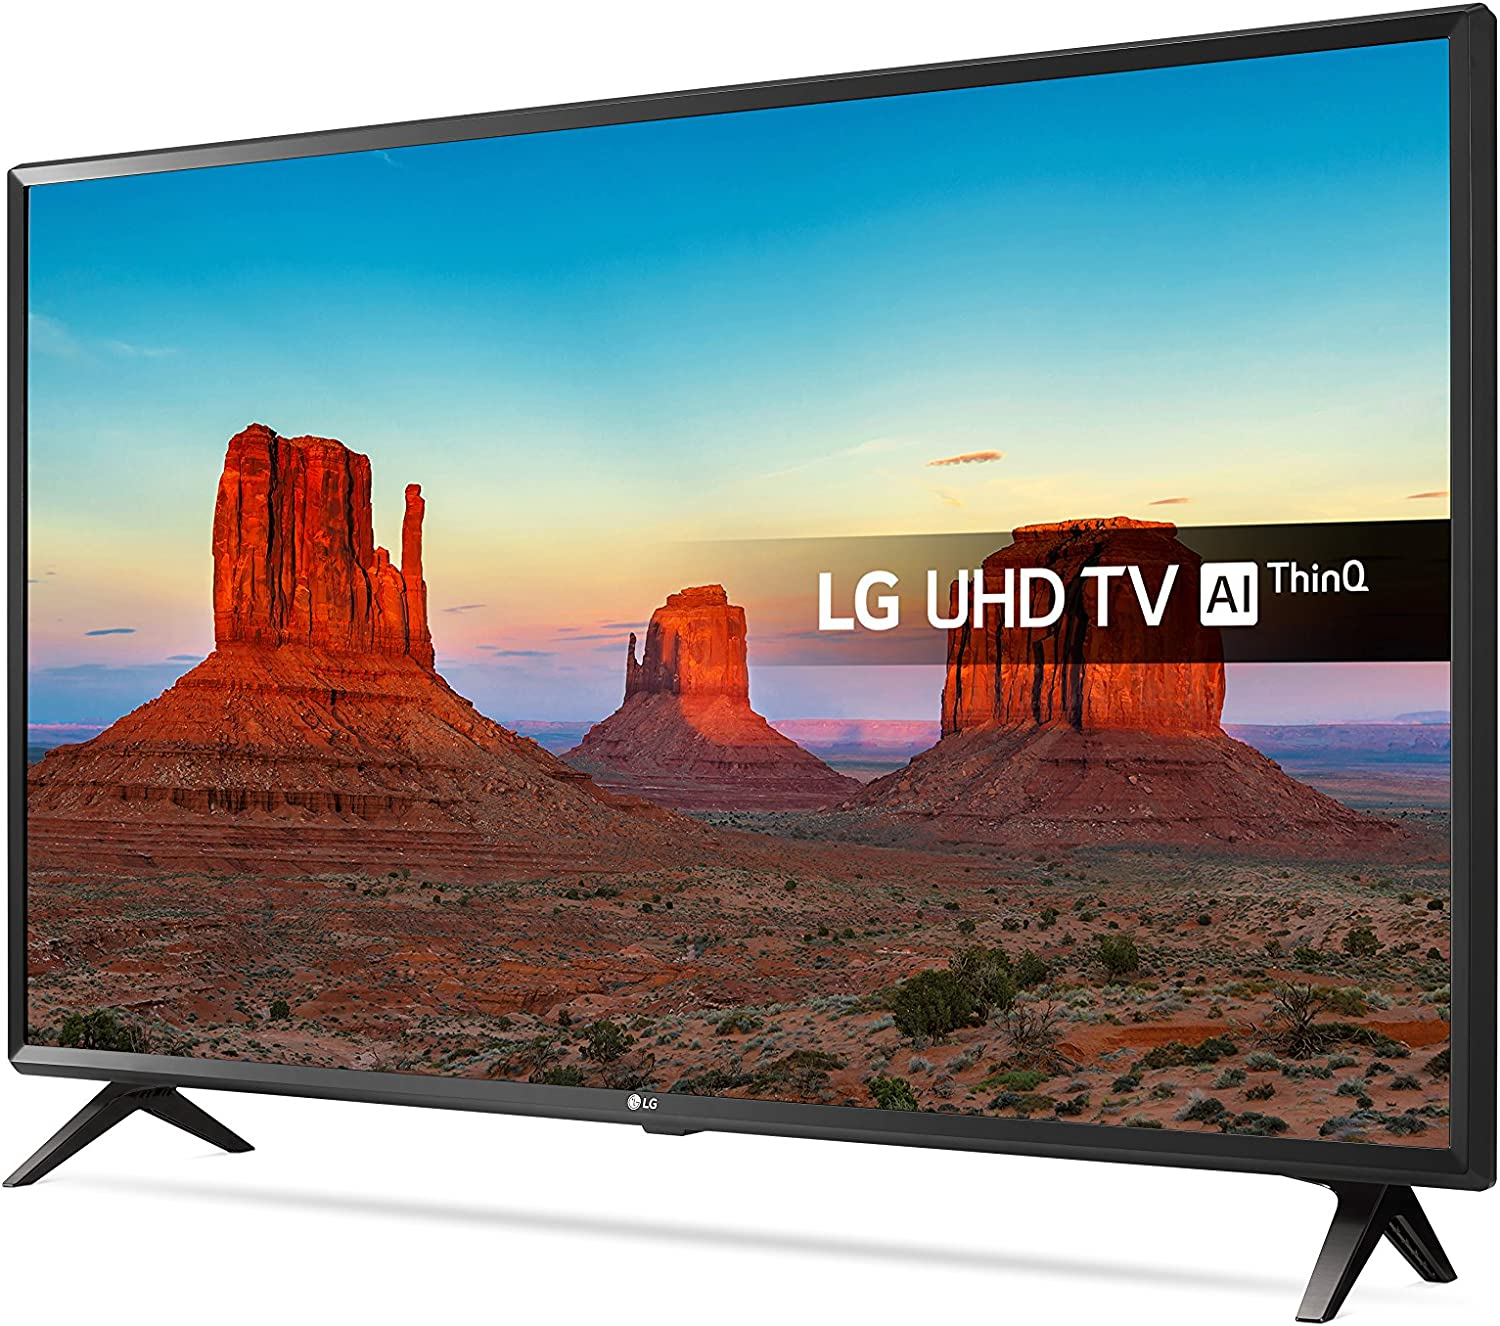 LG Electronics 43UK6300PLB 43 Pulgadas UHD 4K HDR Smart TV LED con TDT Play: Amazon.es: Electrónica